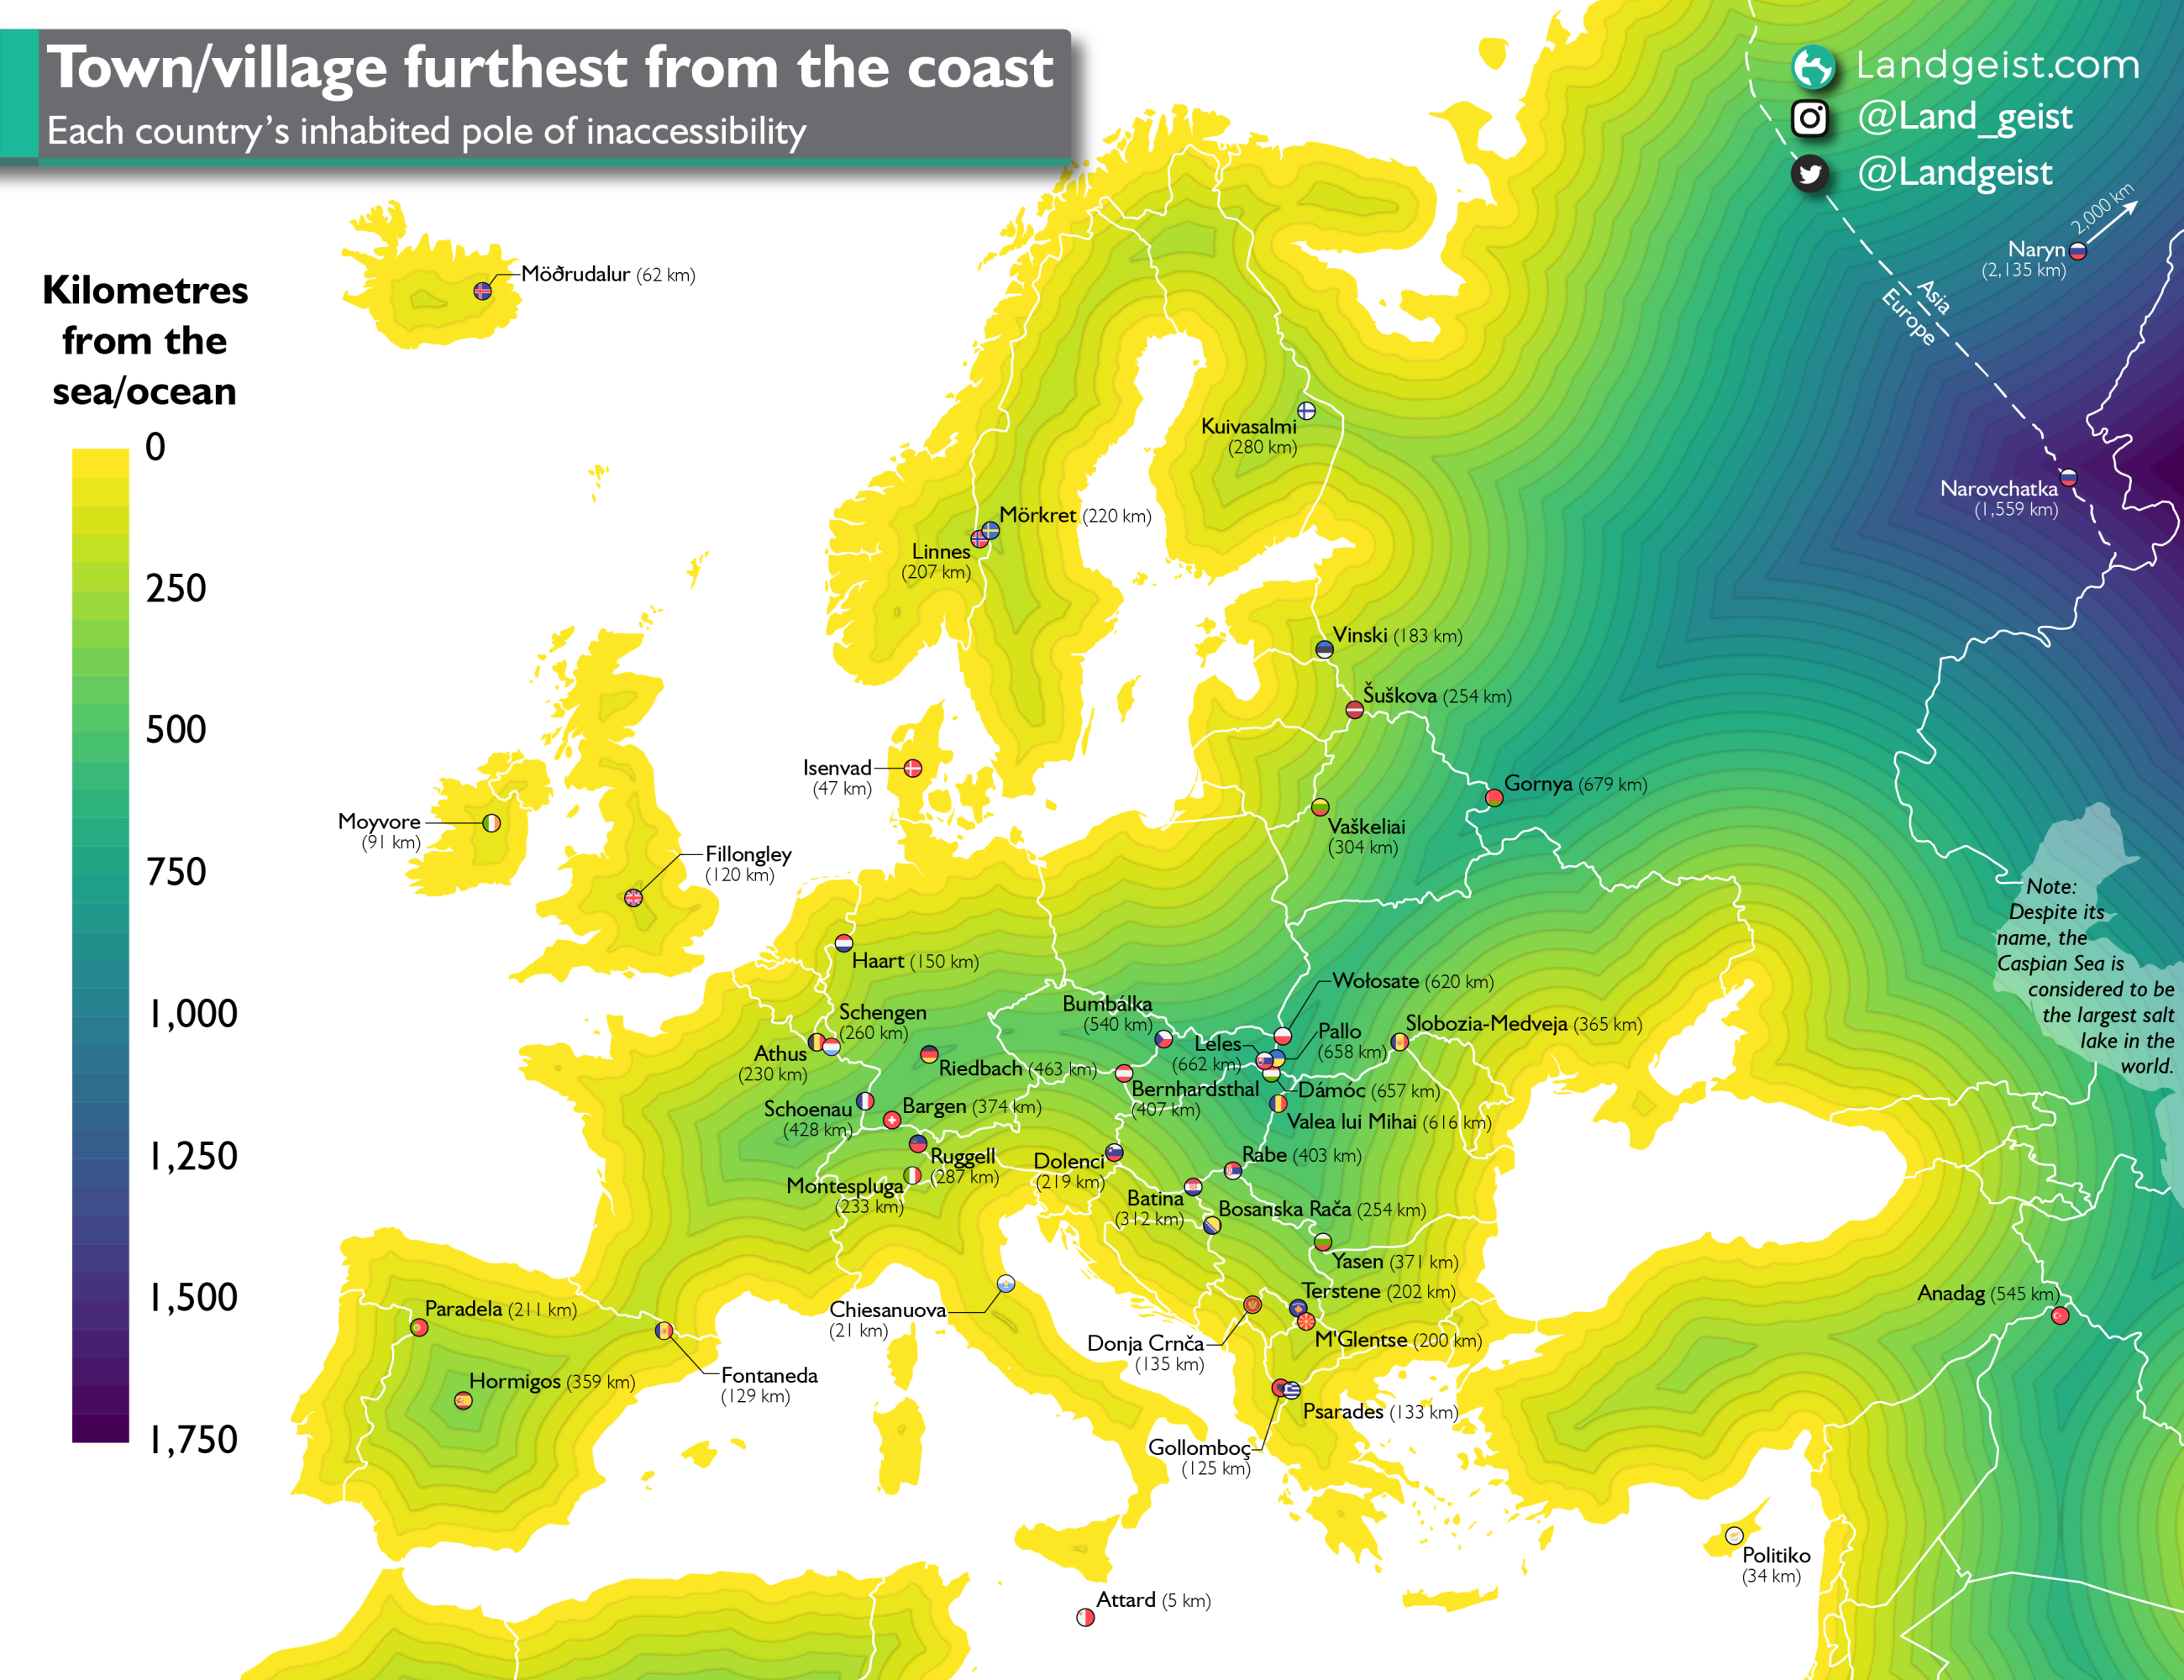 Map showing the town or village in each European country that is the furthest from the coast.